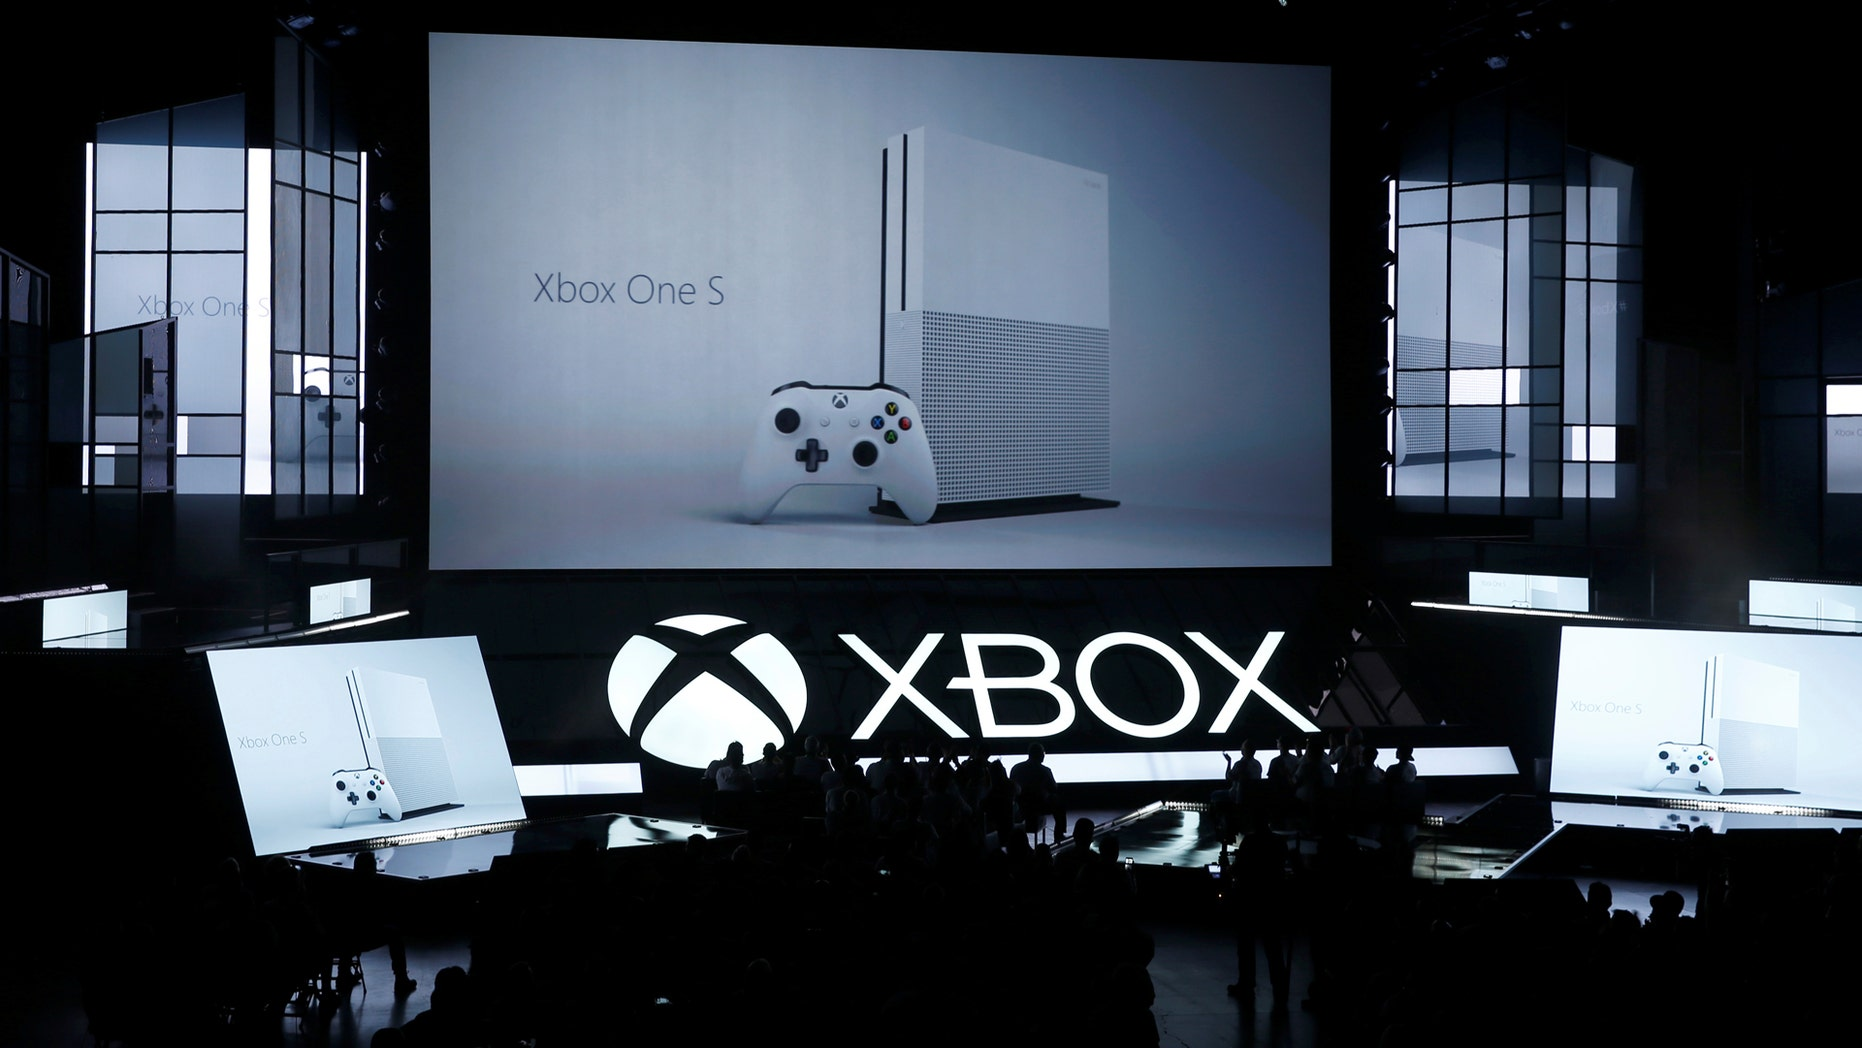 File photo: Microsoft displays its Xbox One S console at the Xbox E3 2016 media briefing in Los Angeles, California, U.S., June 13, 2016. (REUTERS/Lucy Nicholson)